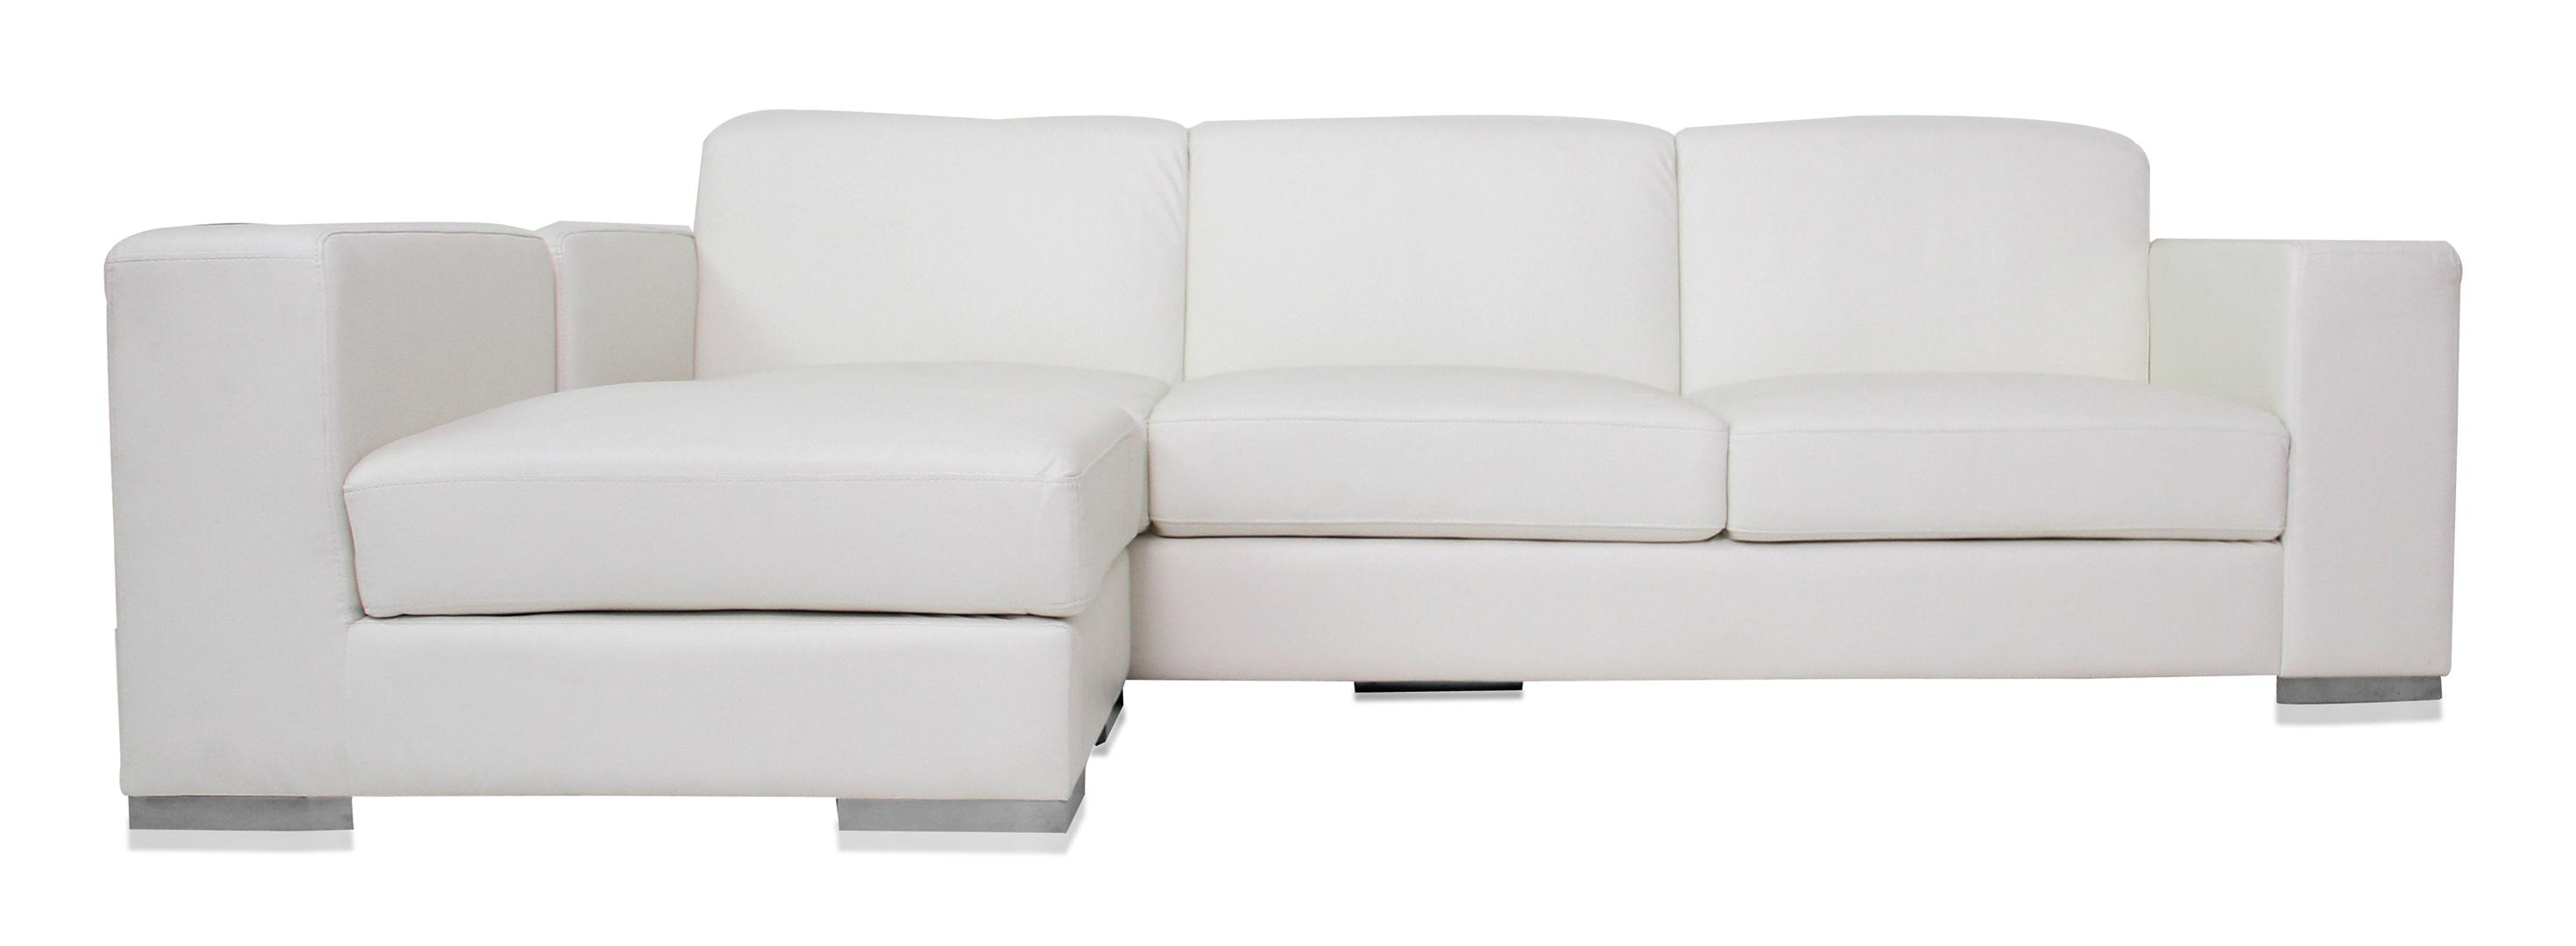 20 choices of white leather sofas sofa ideas Modern white furniture for living room